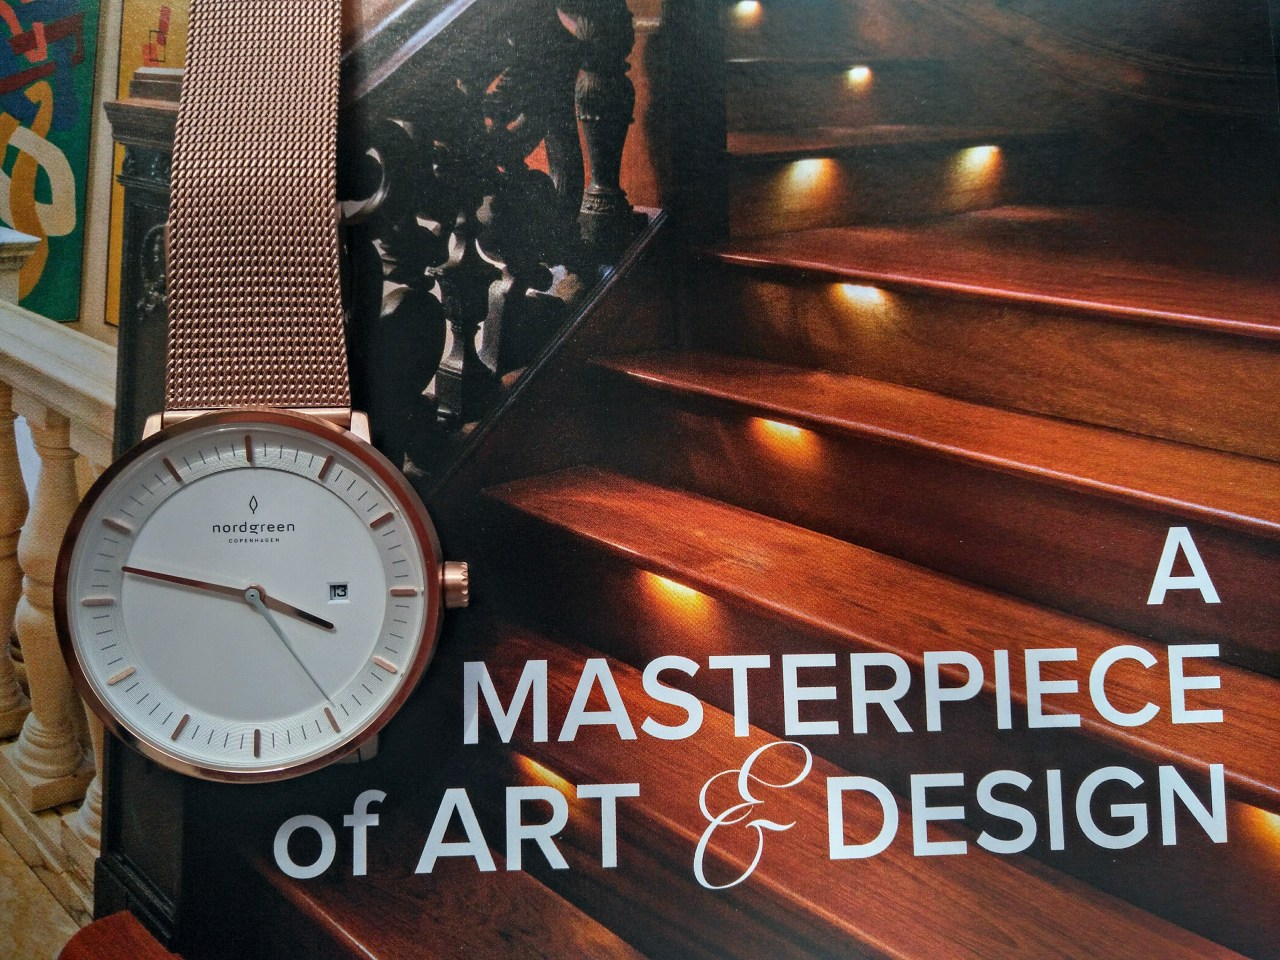 Nordgreen watches. Nordgreen Watches review. Nordgreen watches men. Nordgreen Watches women